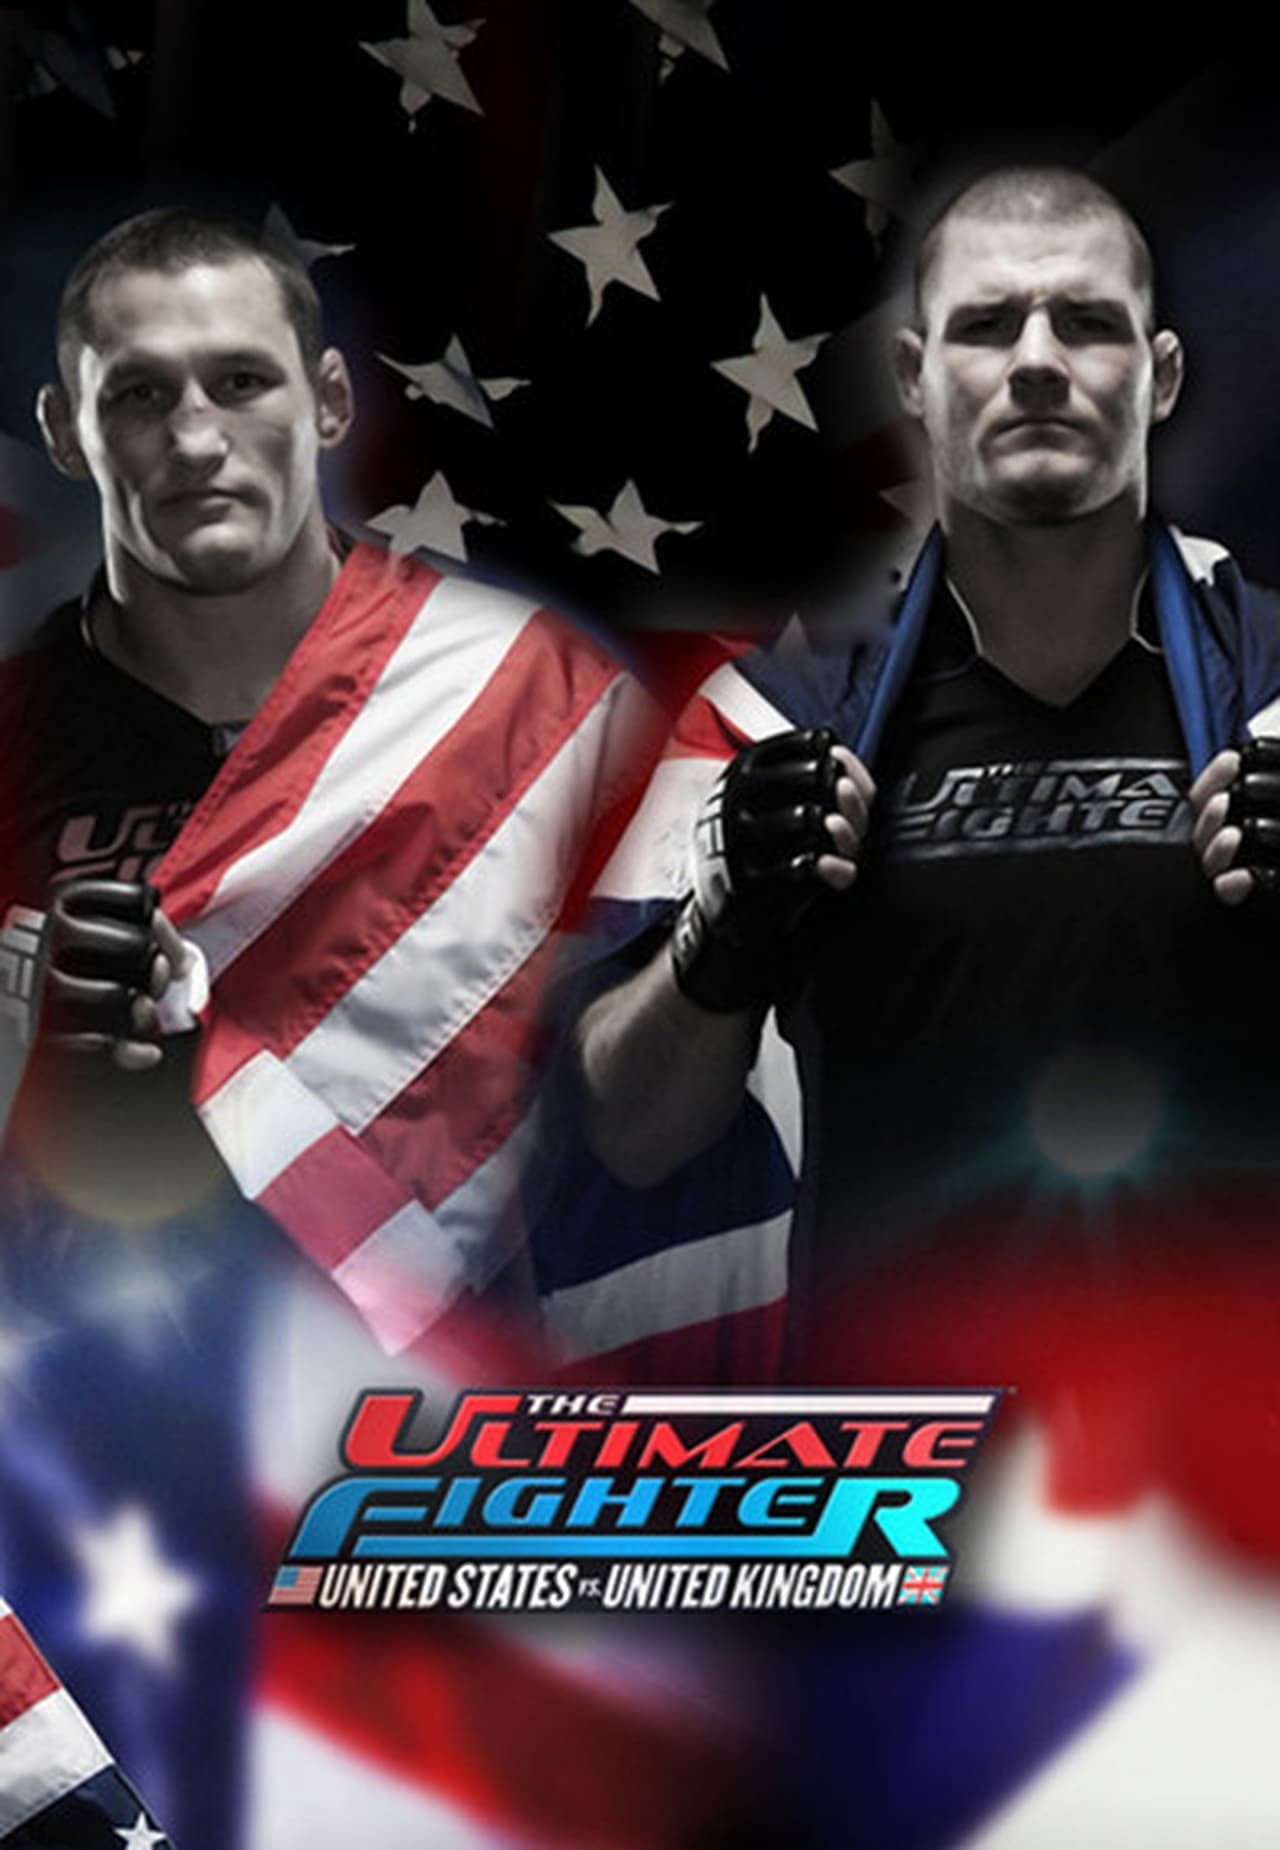 Watch The Ultimate Fighter Season 9 Online